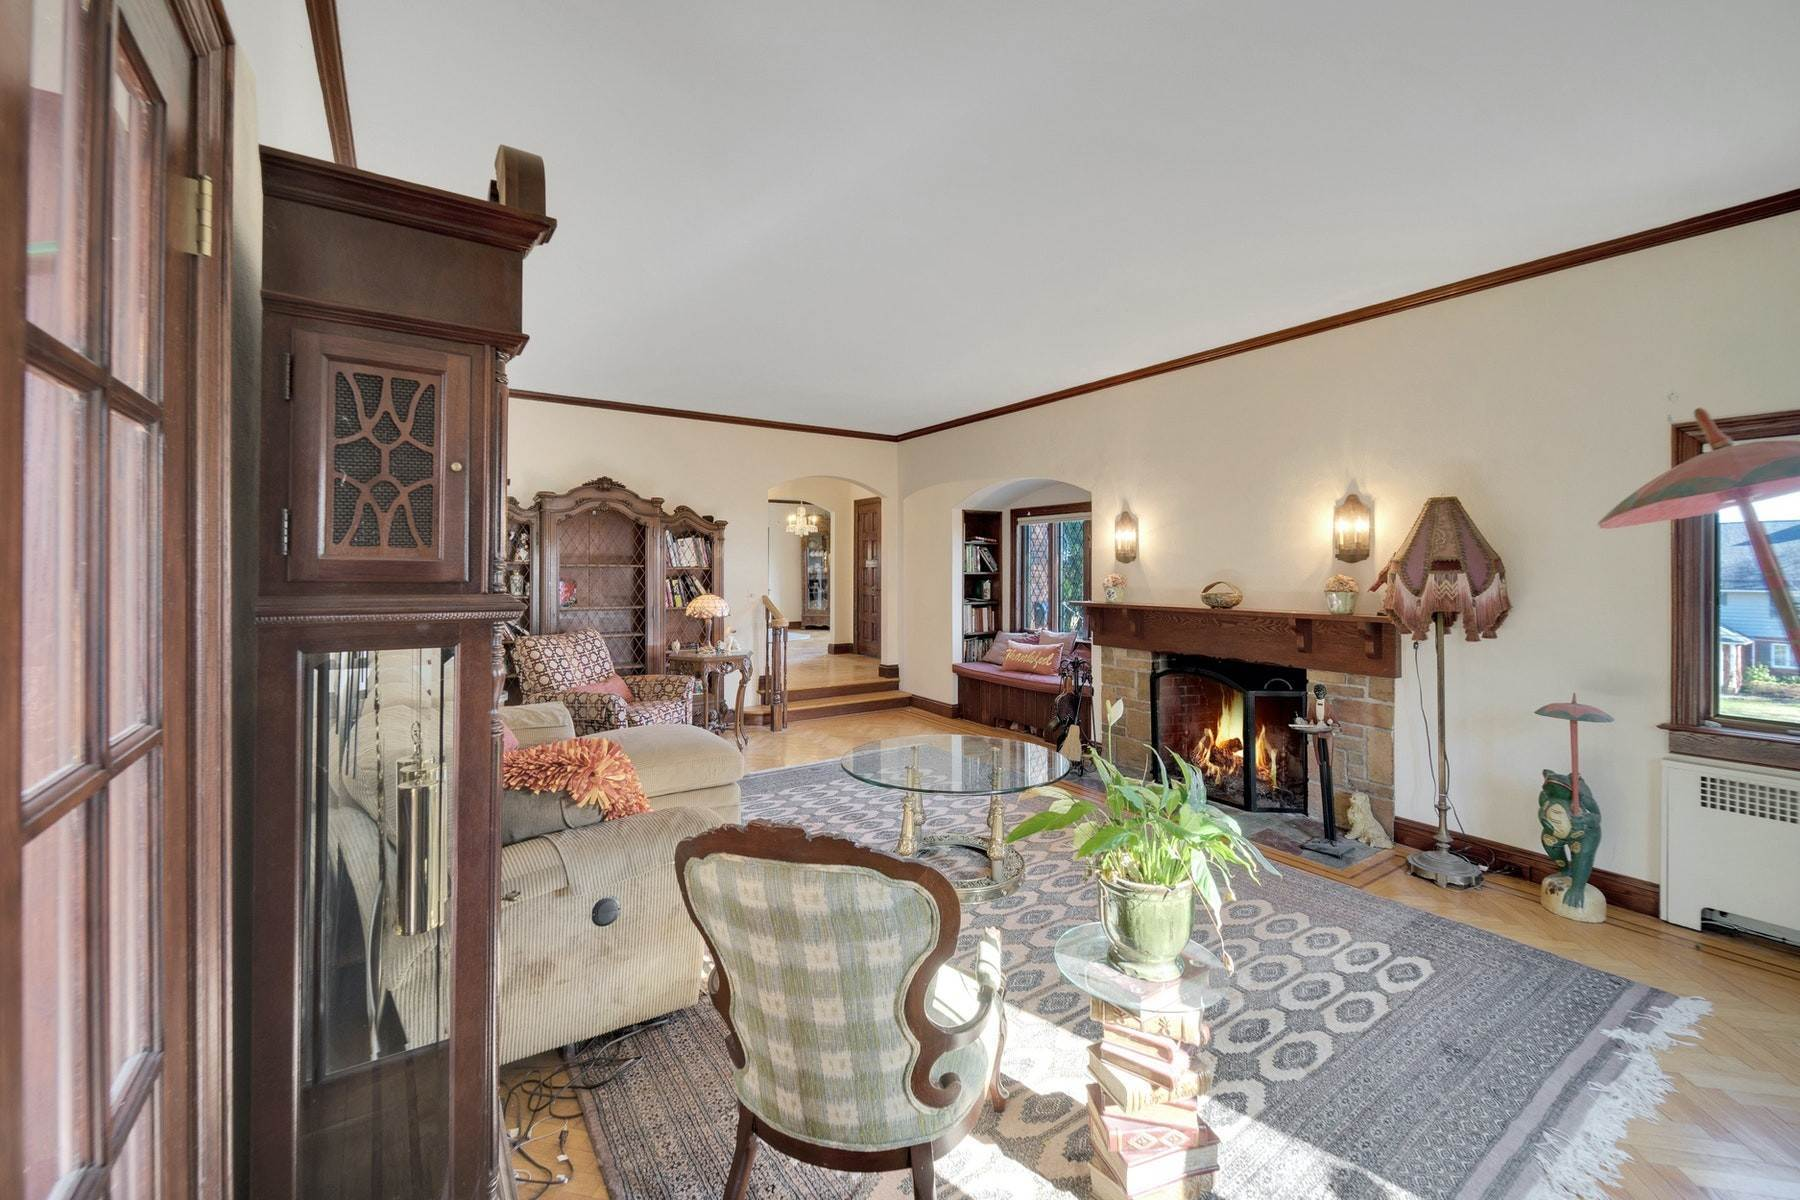 4. Single Family Homes for Sale at Village Brick Tudor 17 Wisner Terrace Goshen, New York 10924 United States